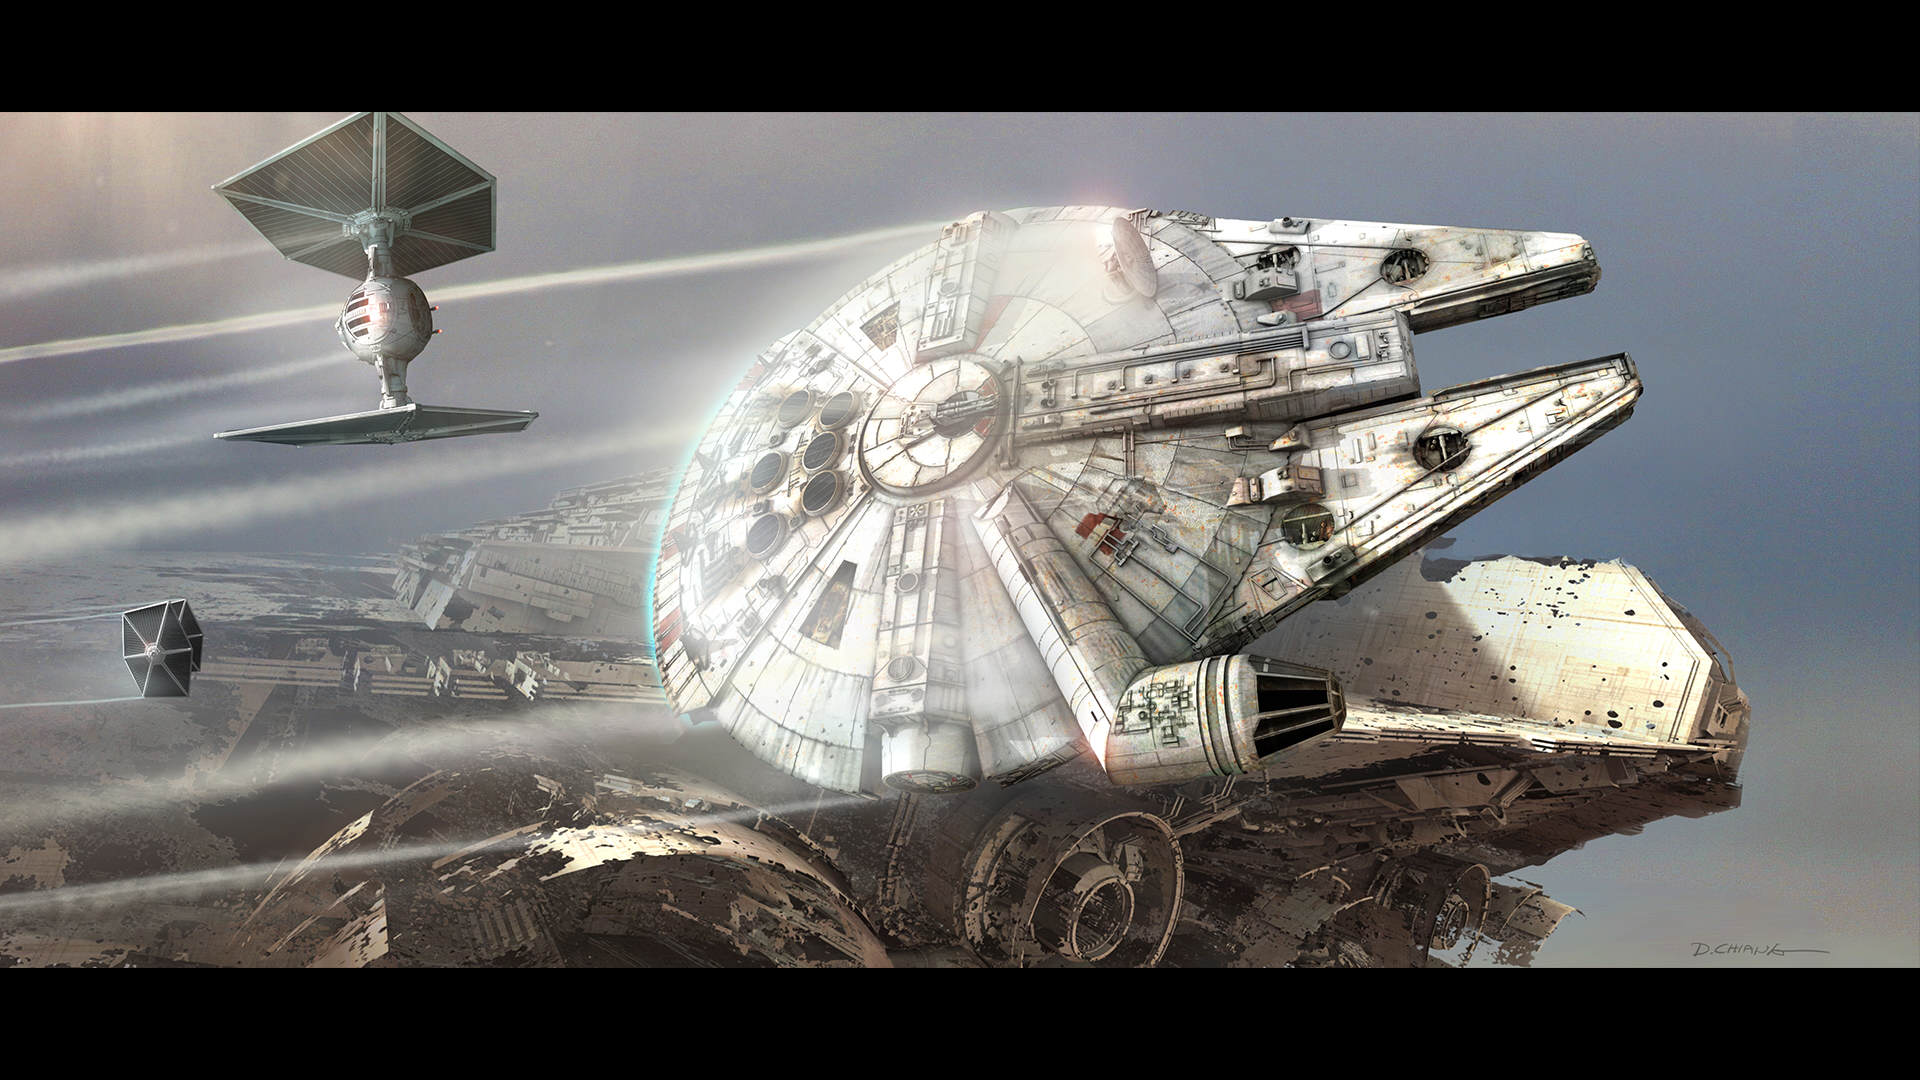 ARTDEPT VD TFA 014 Star Wars Creators Reveal Awesome Force Awakens Concept Art